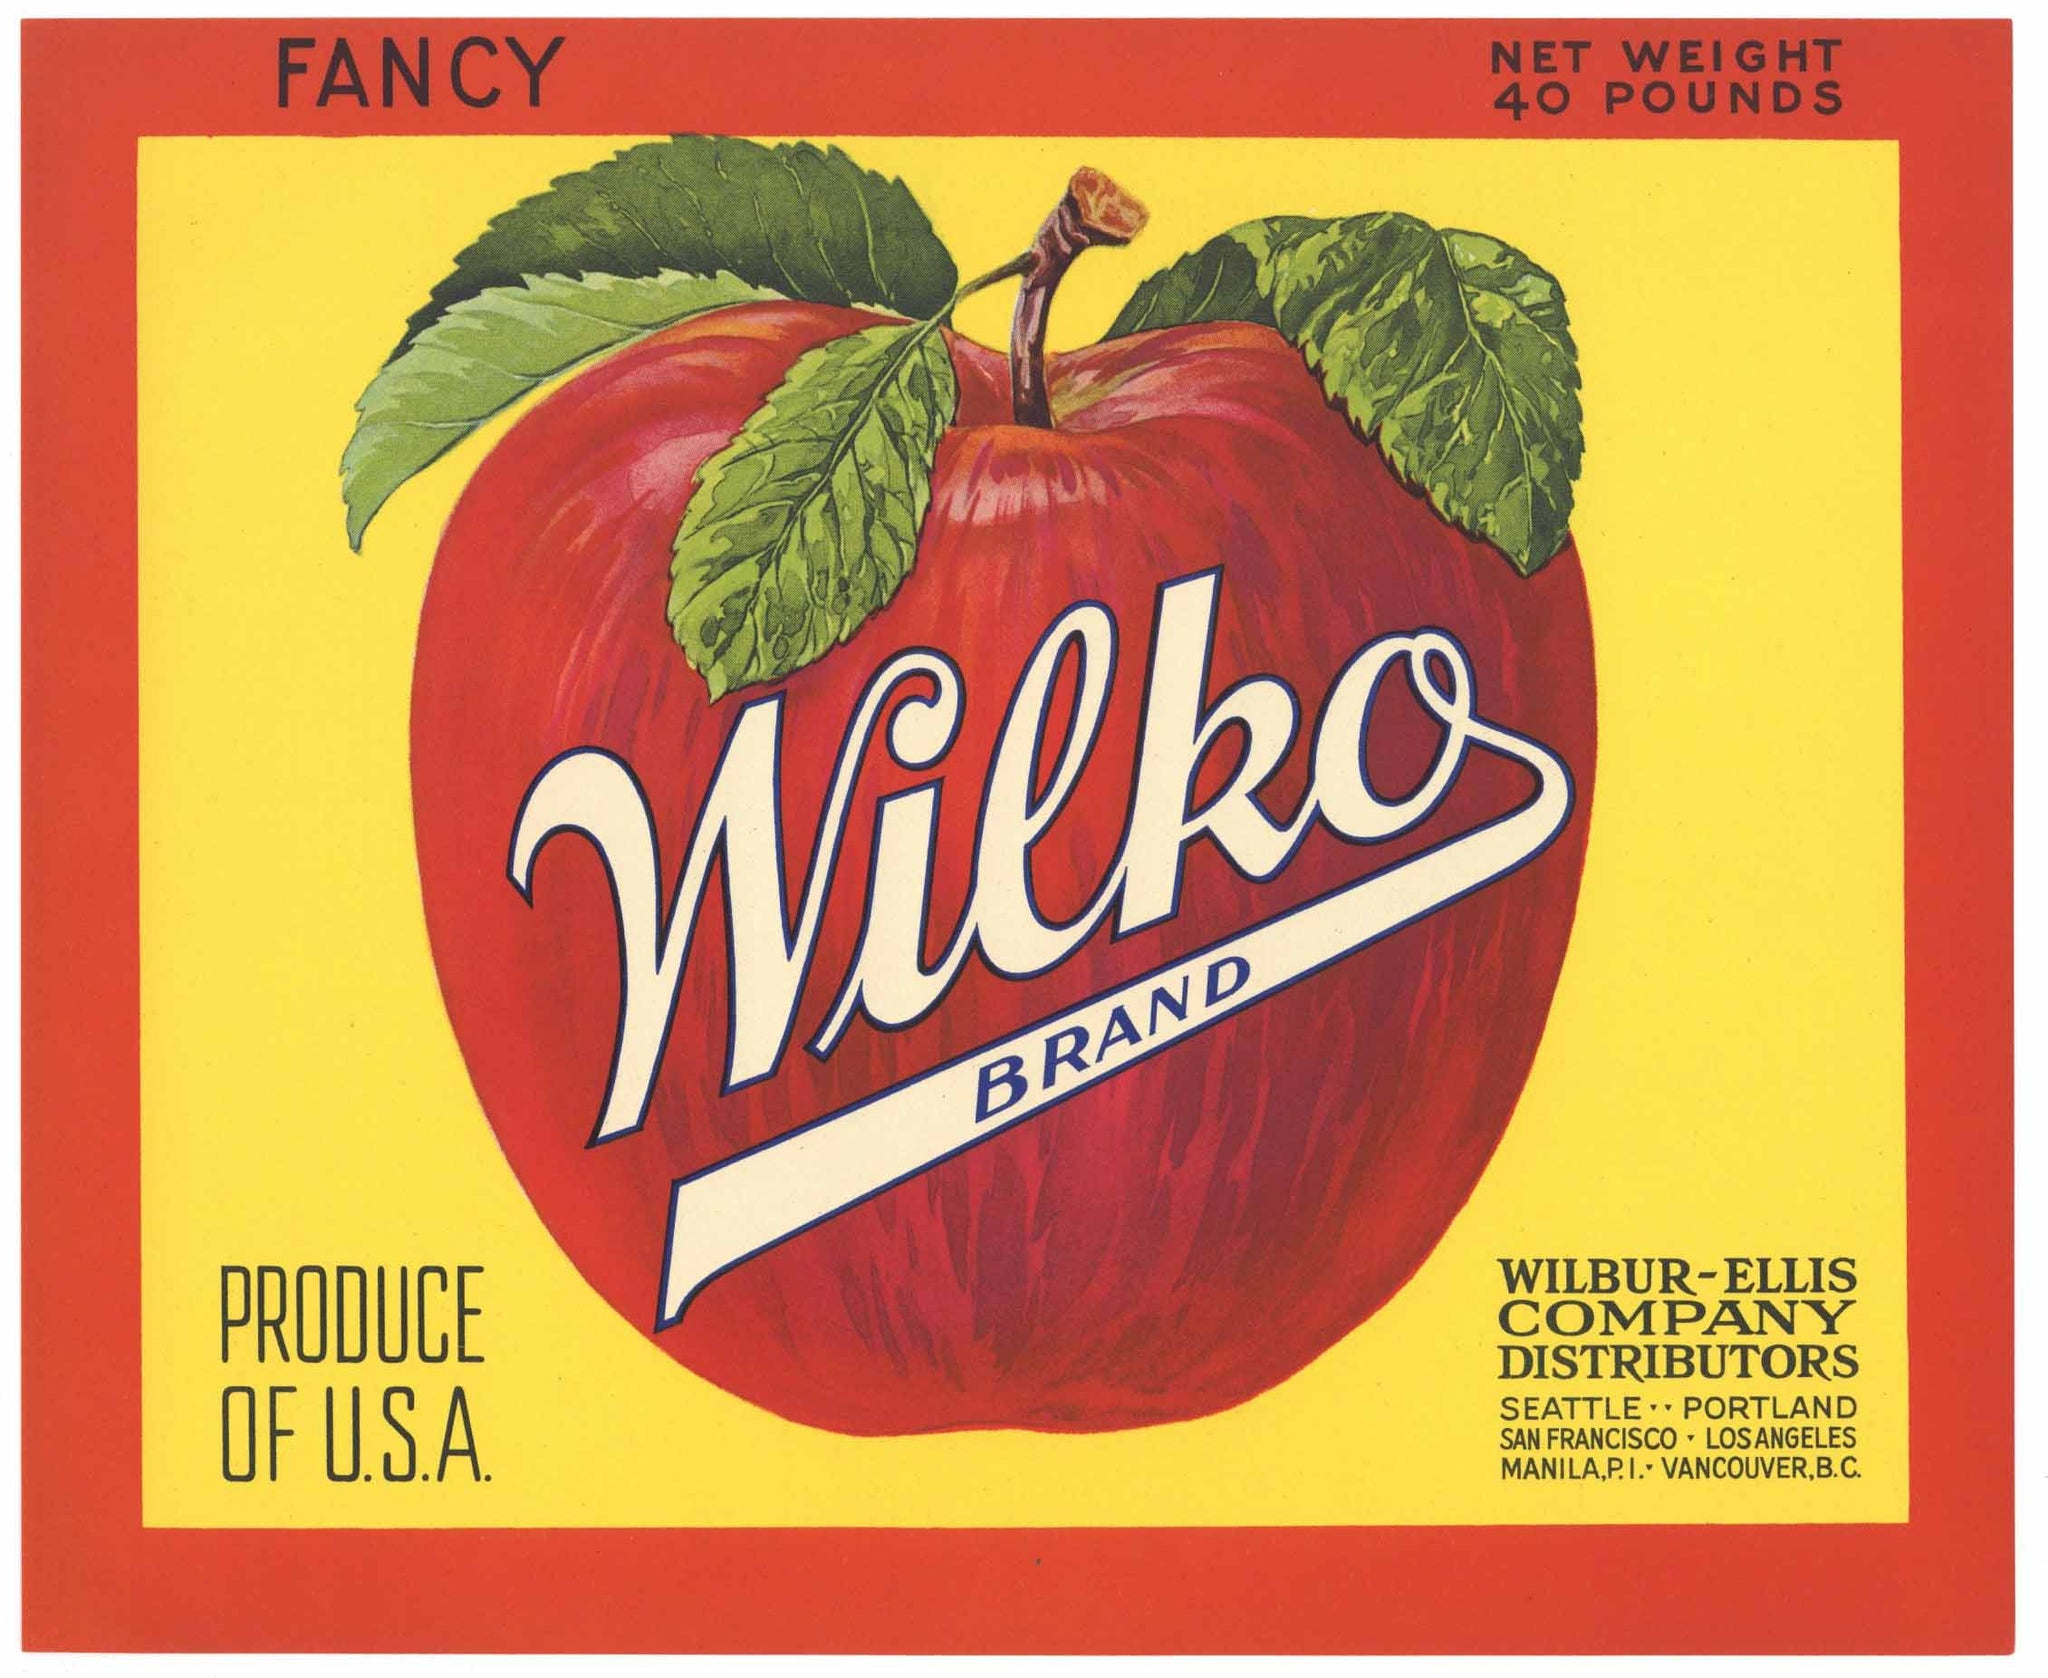 Wilko Brand Vintage Apple Crate Label, red, yellow